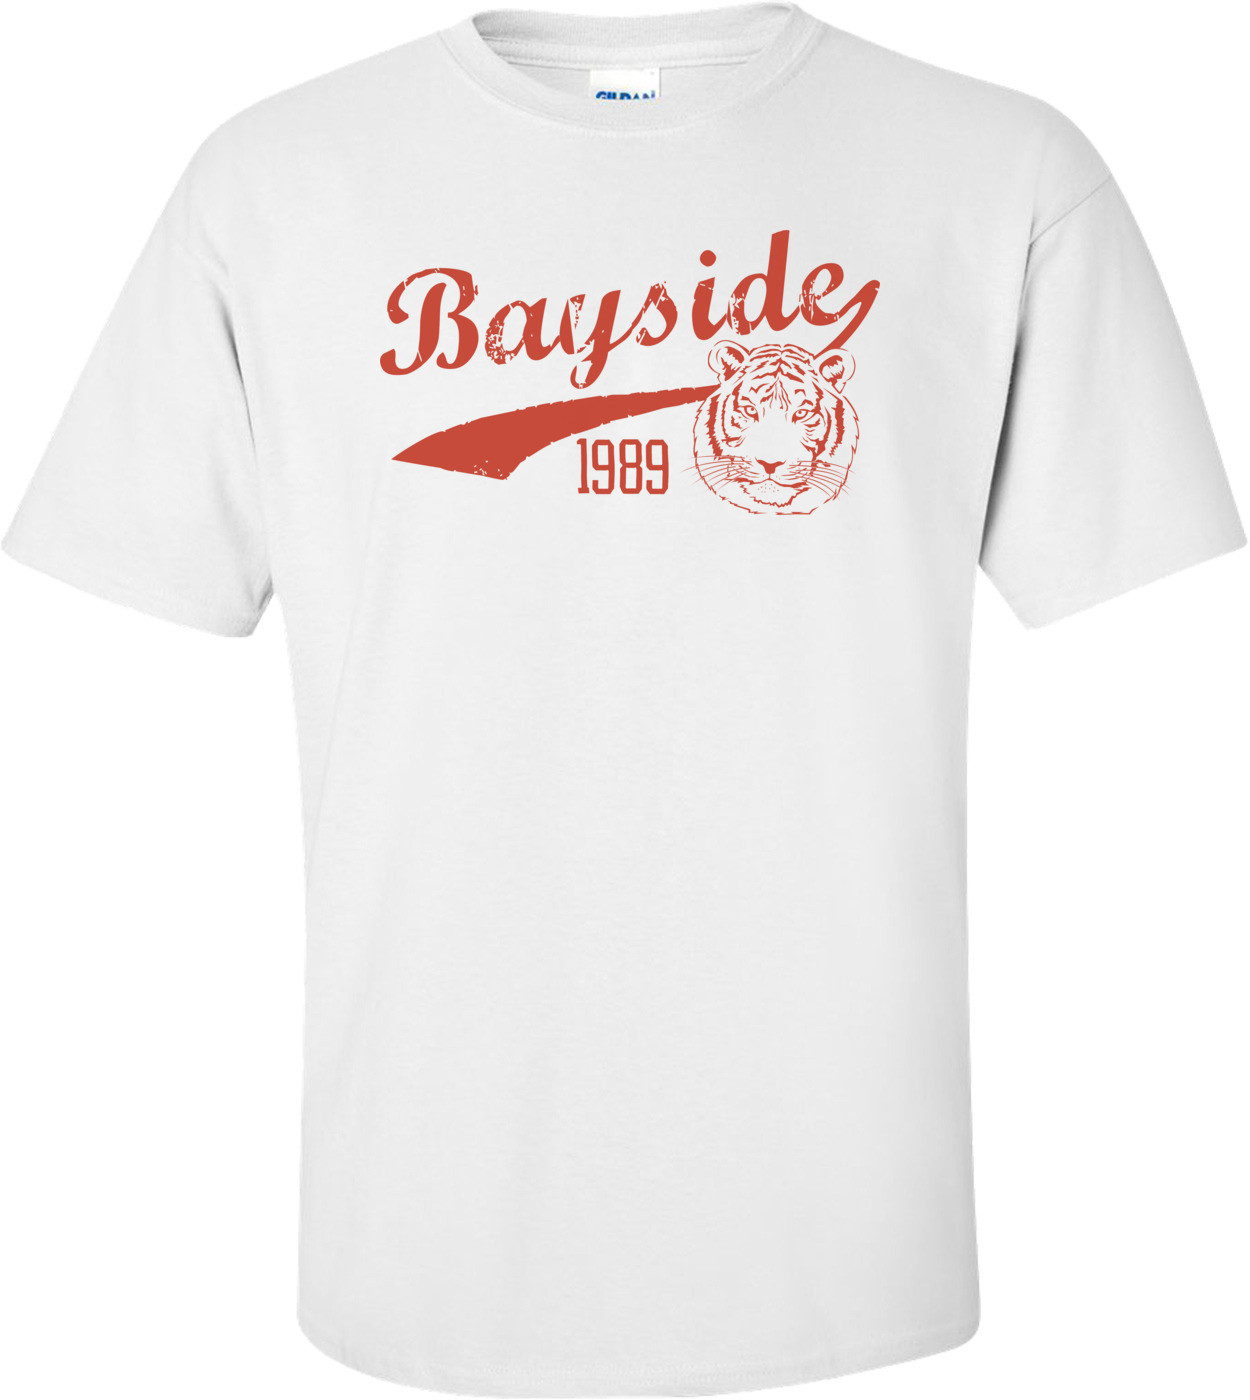 Bayside 1989 - Saved By The Bell